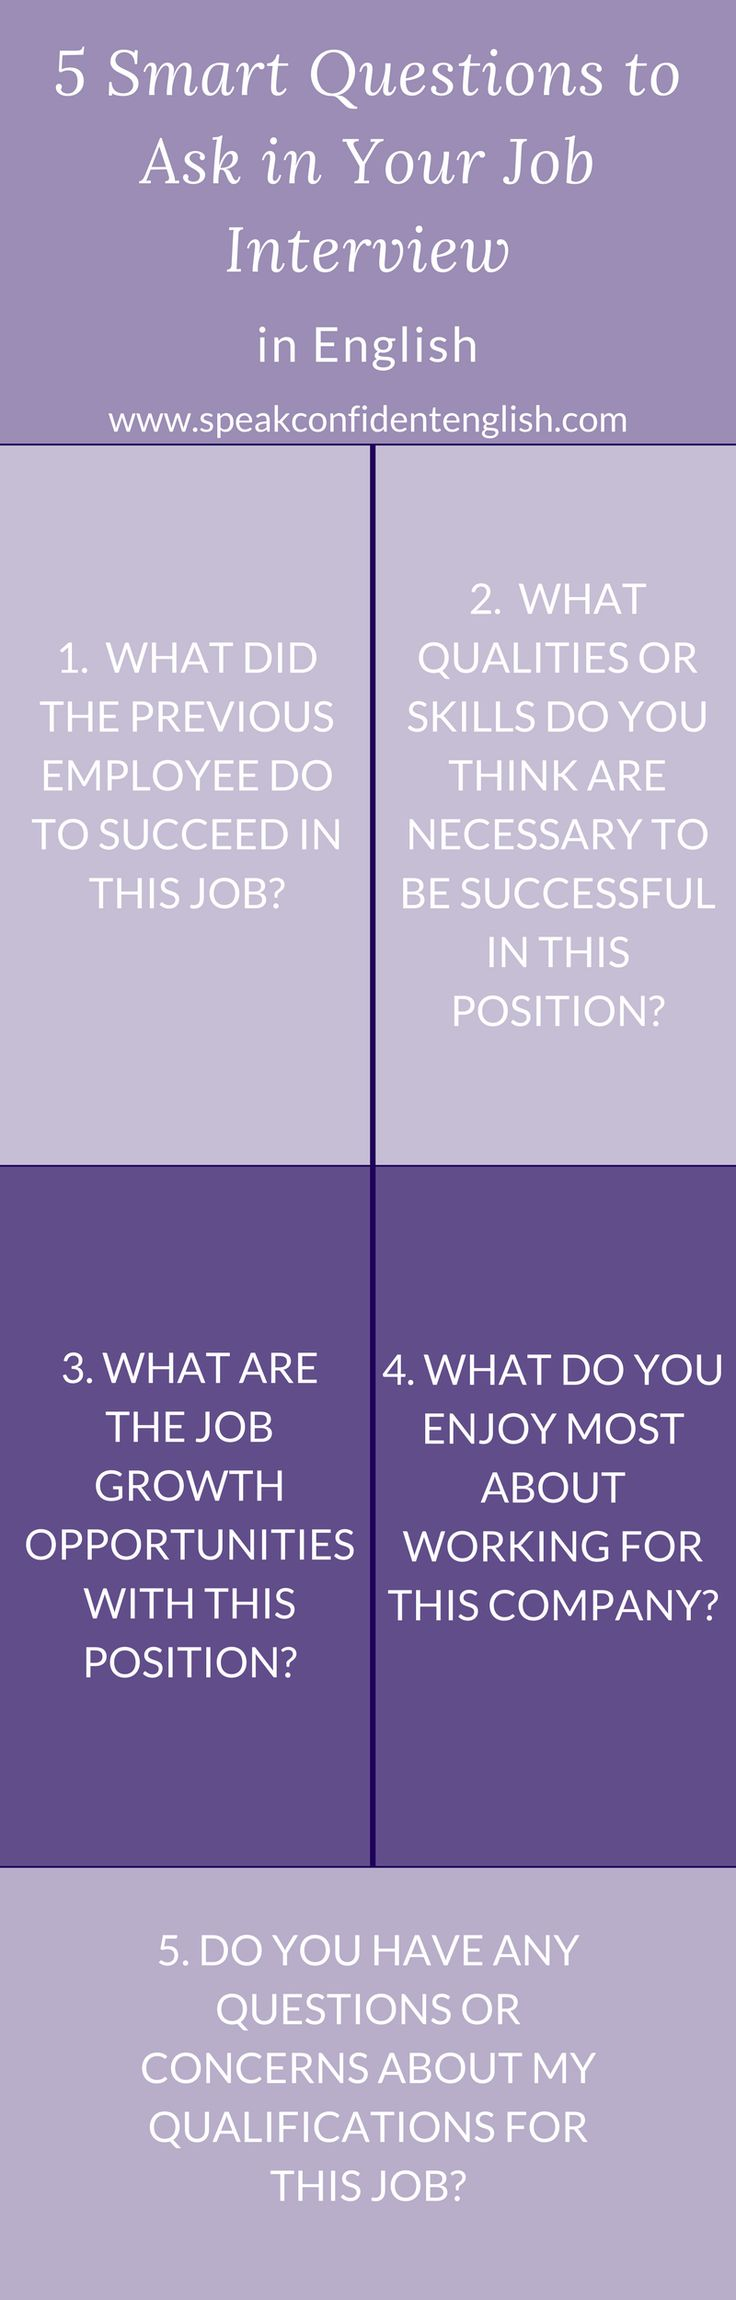 English Job Interviews. Find out why these are great questions to ask and get the full lesson at http://www.speakconfidentenglish.com/job-interview-ask-questions/?utm_campaign=coschedule&utm_source=pinterest&utm_medium=Speak%20Confident%20English%20%7C%20English%20Fluency%20Trainer&utm_content=Job%20Interview%20in%20English%3A%20Ask%20These%205%20Smart%20Questions.